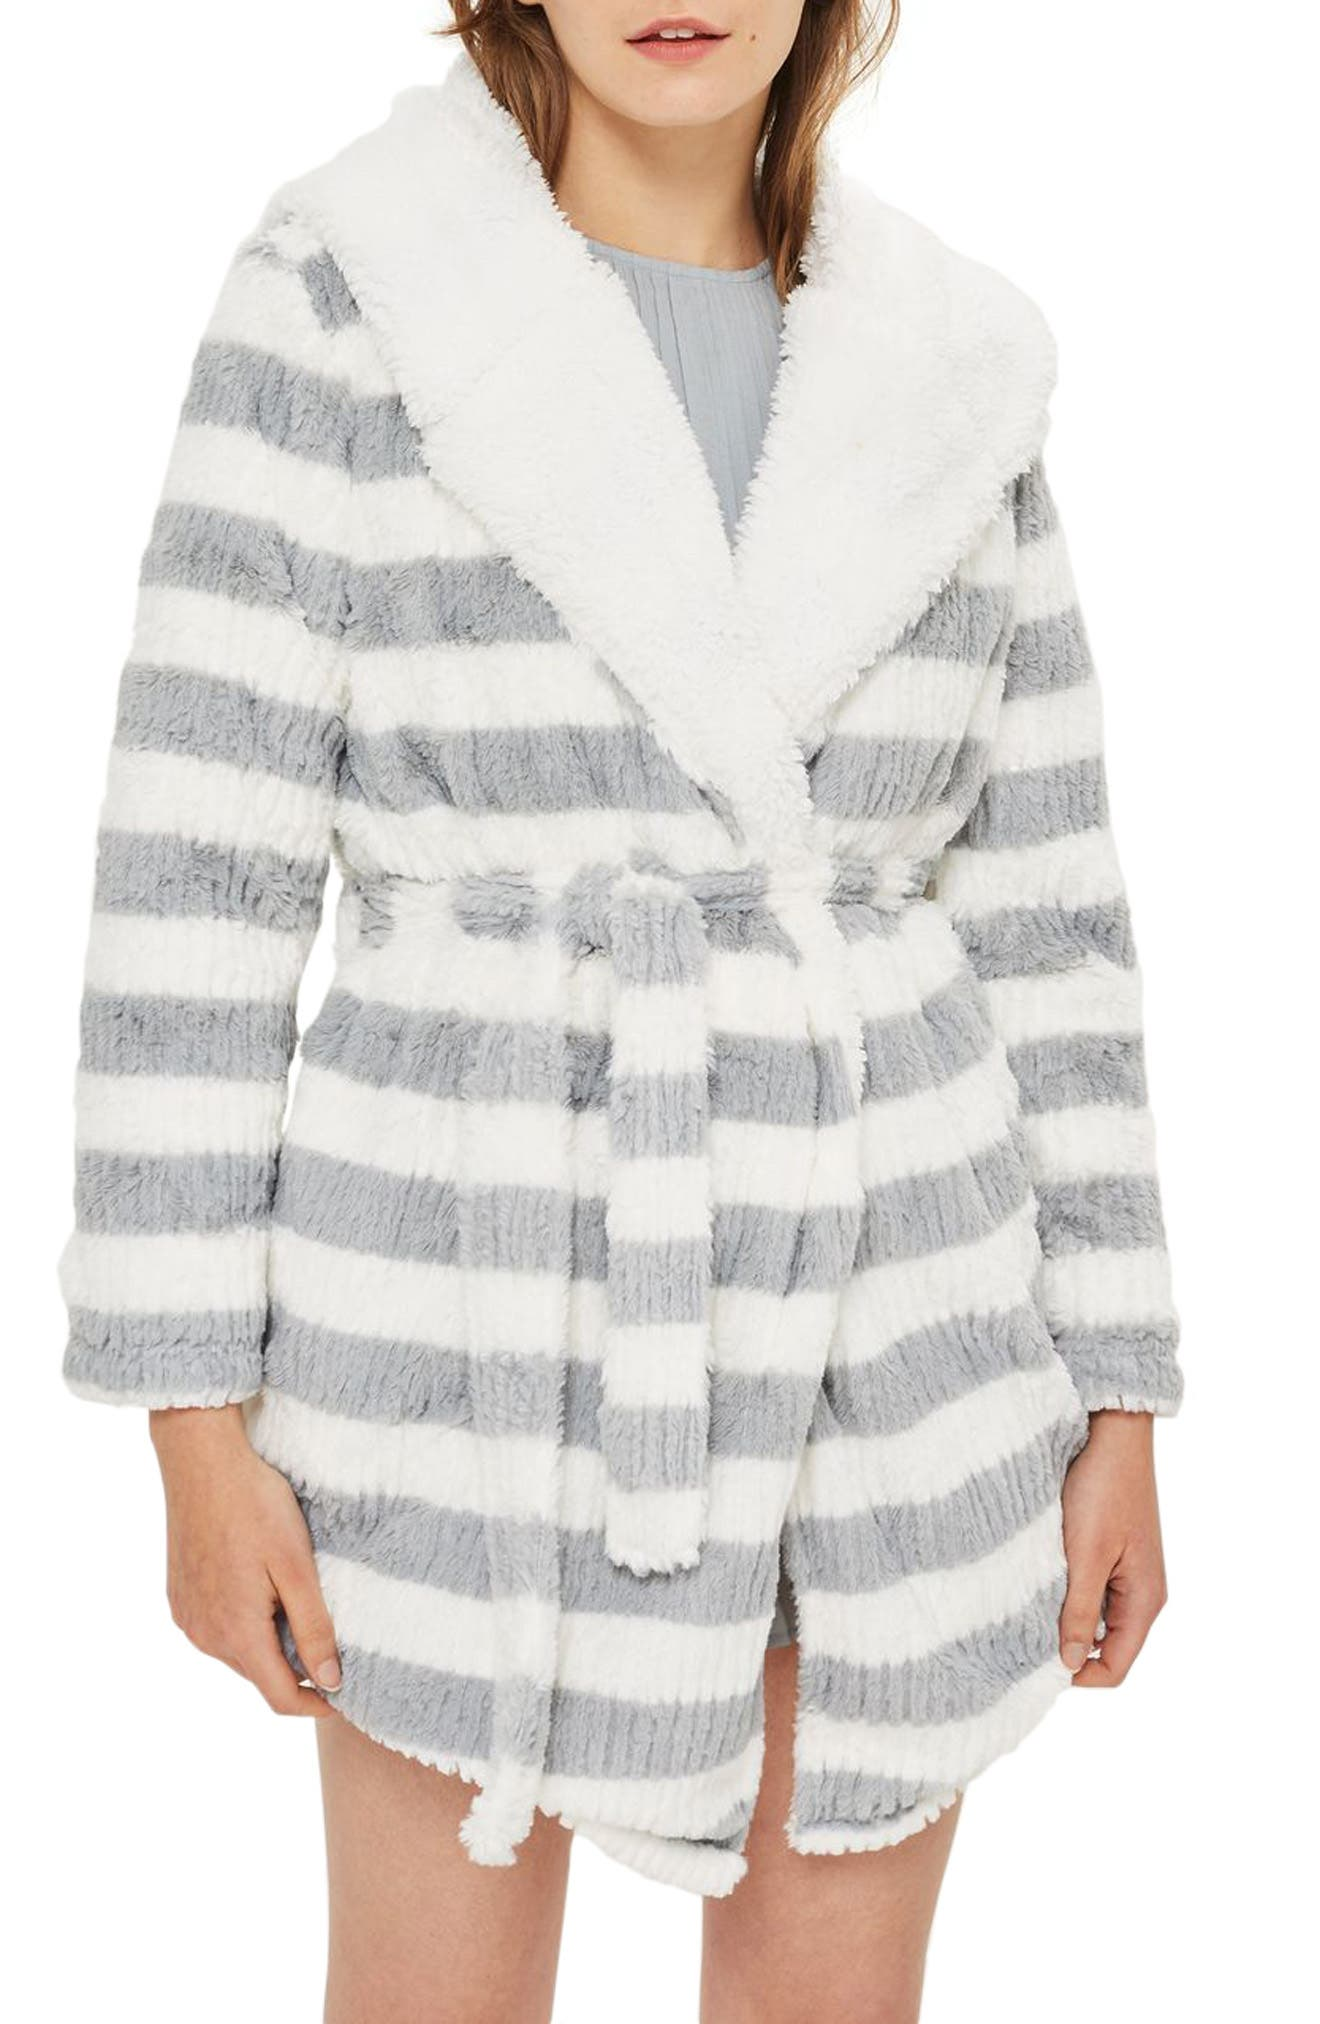 Topshop Stripe Short Robe